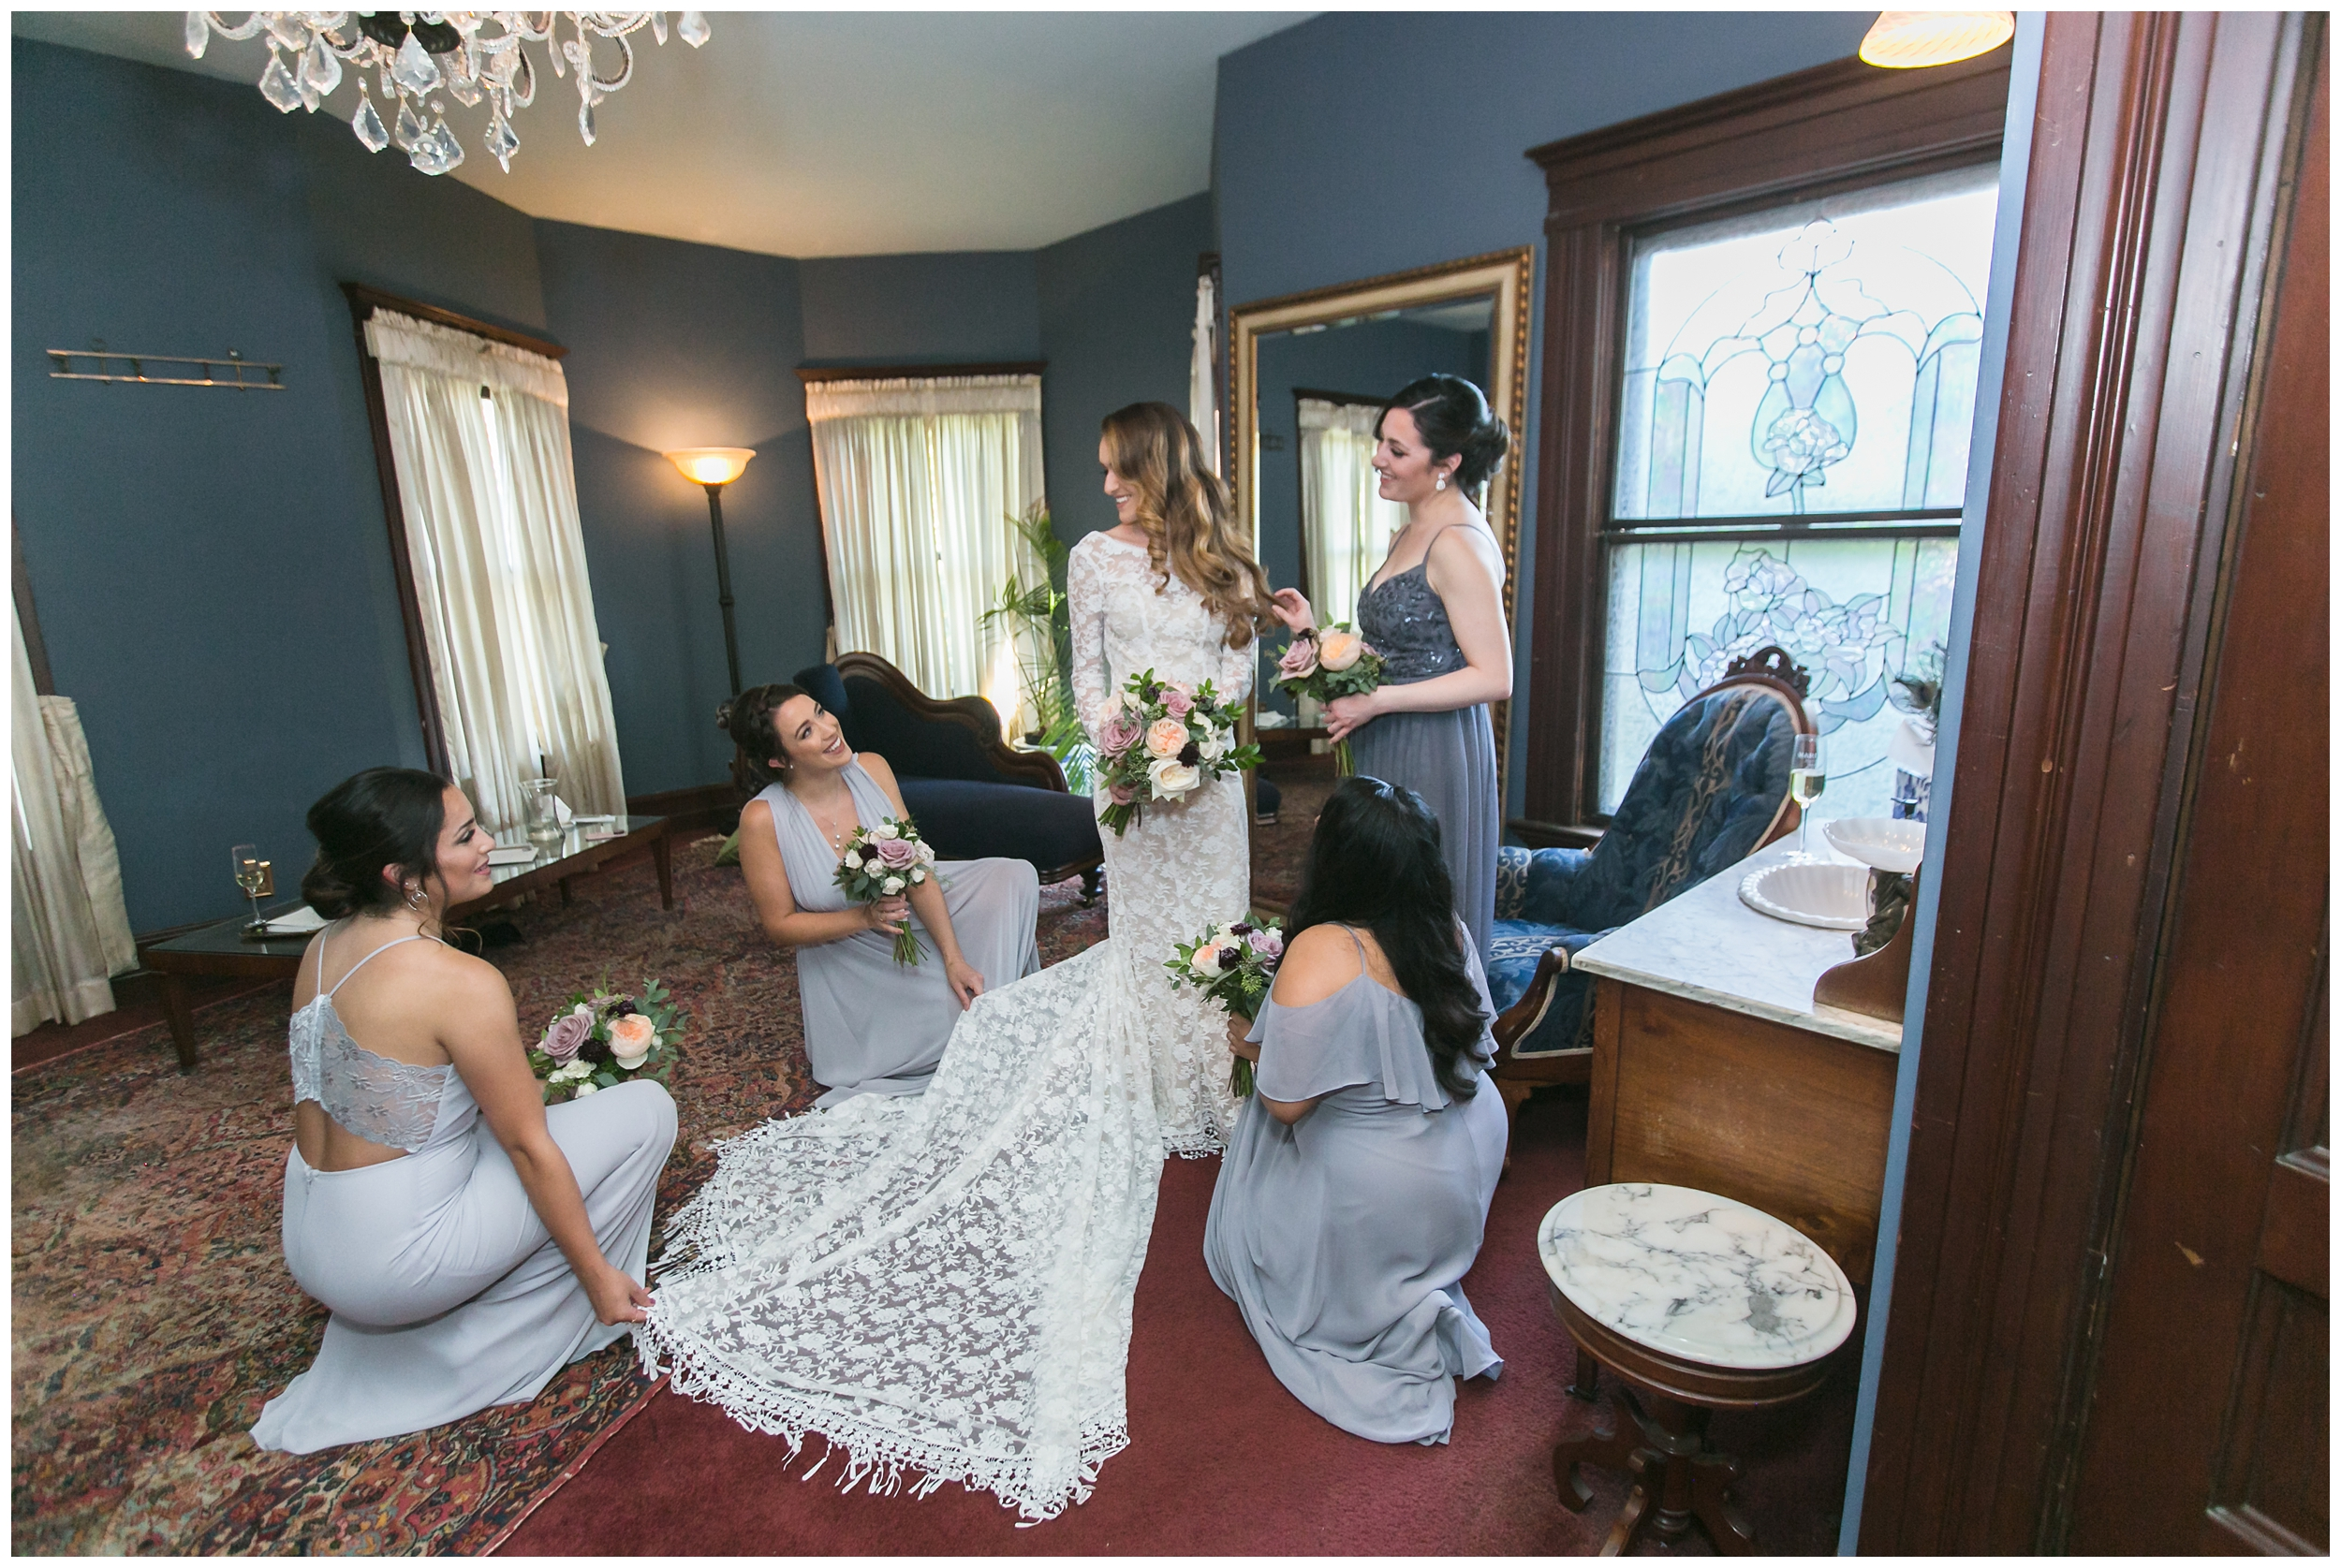 chic-christmas-house-wedding-getting-ready-carrie-vines-_0013.jpg